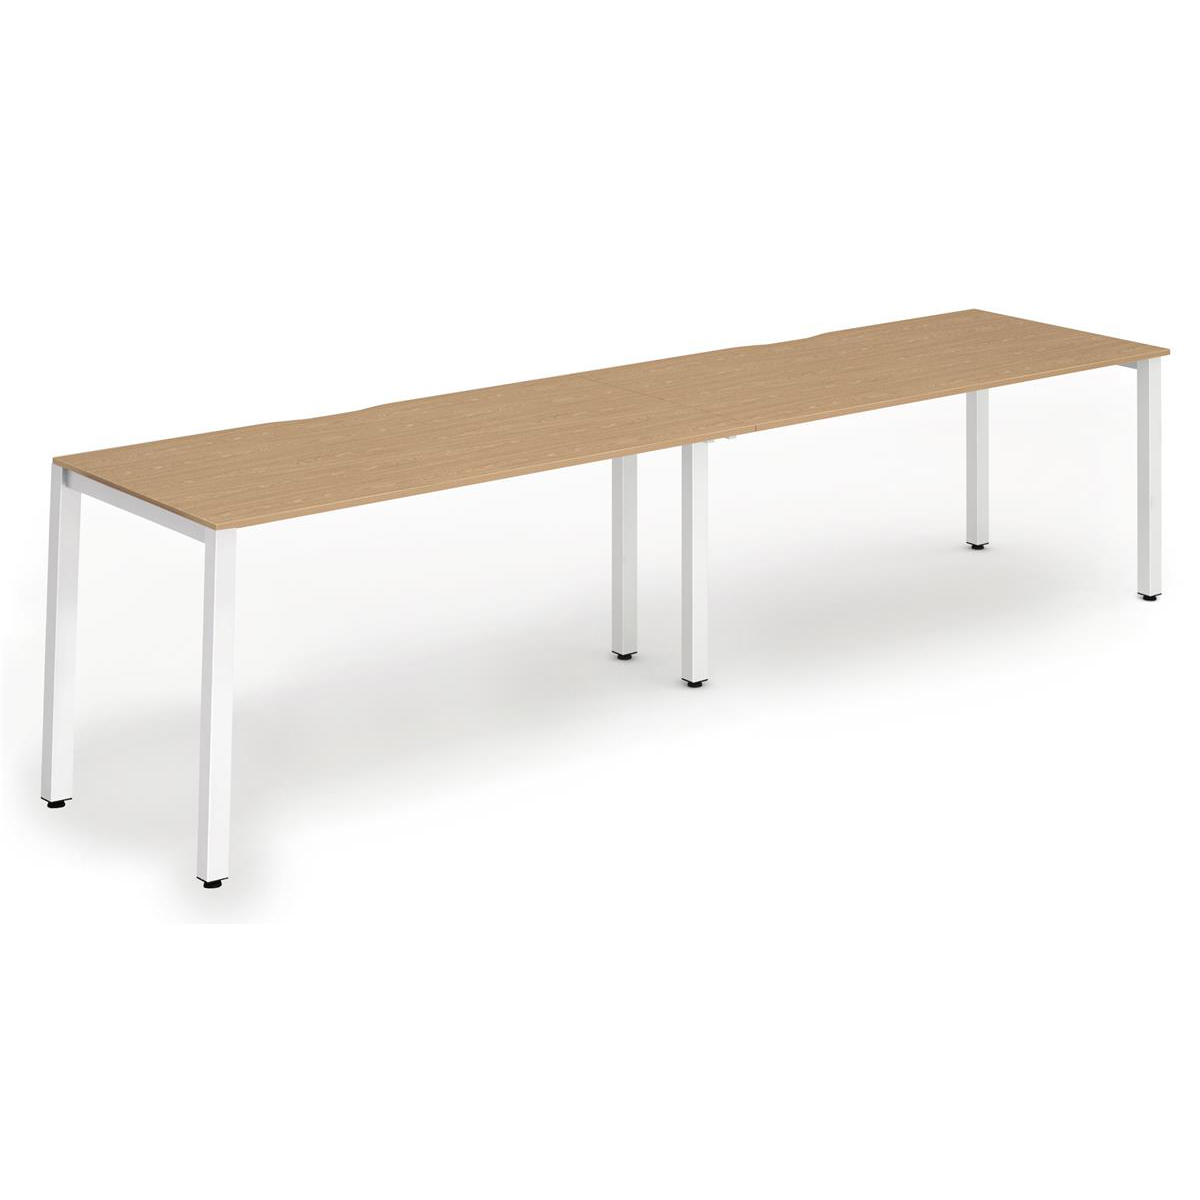 Trexus Bench Desk 2 Person Side to Side Configuration White Leg 3200x800mm Oak Ref BE348